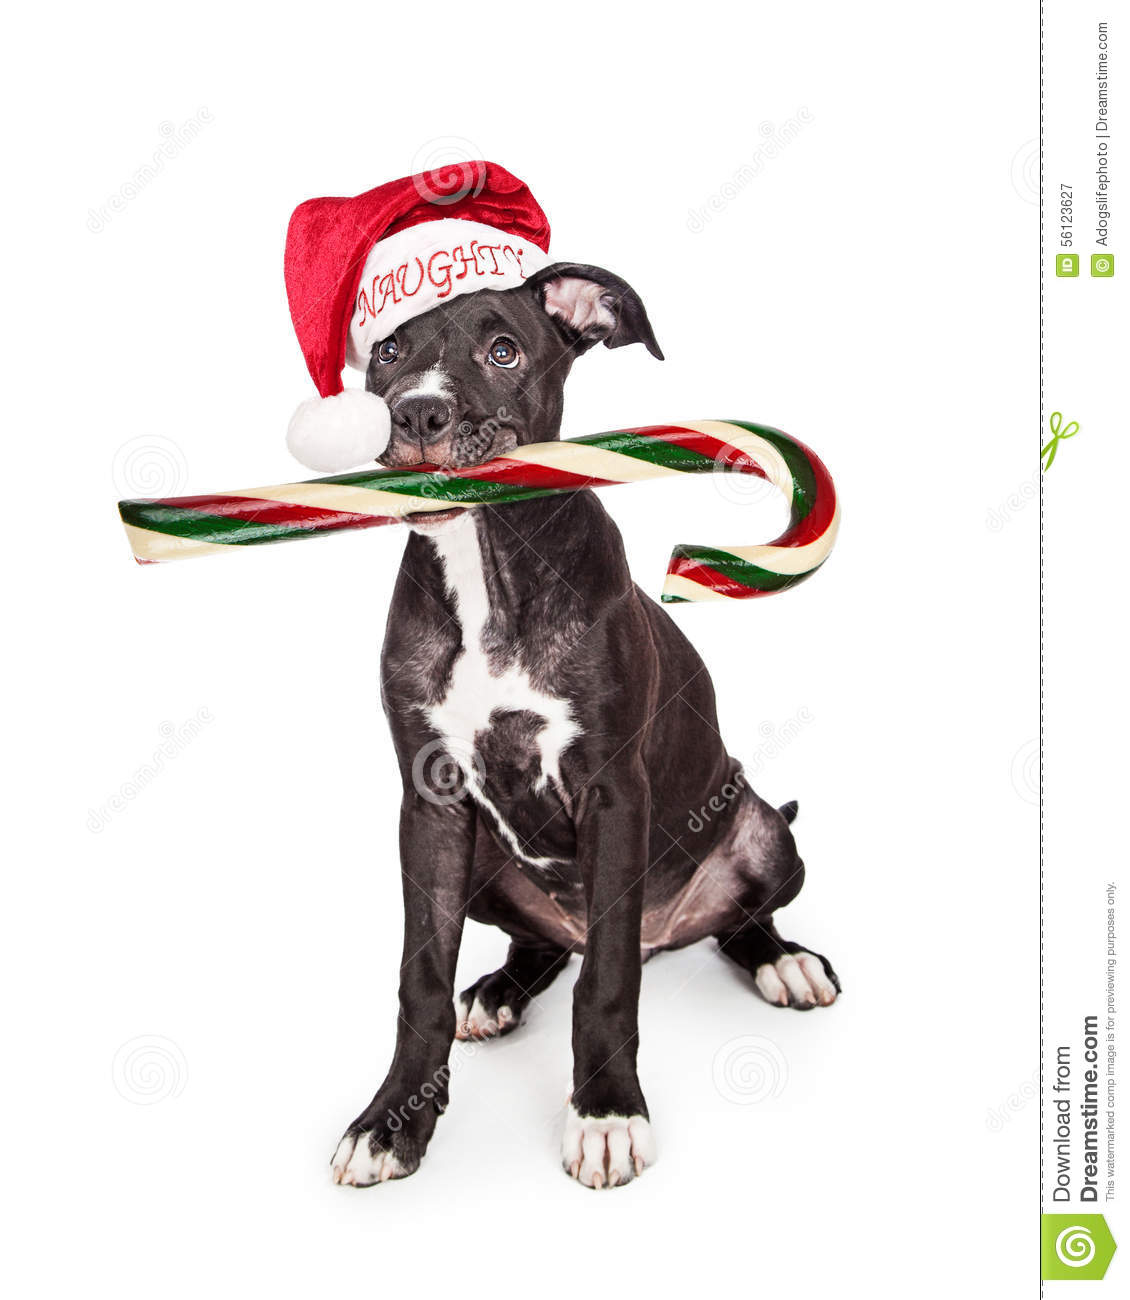 Naughty Christmas Puppy Eating Candy Cane Stock Photo.